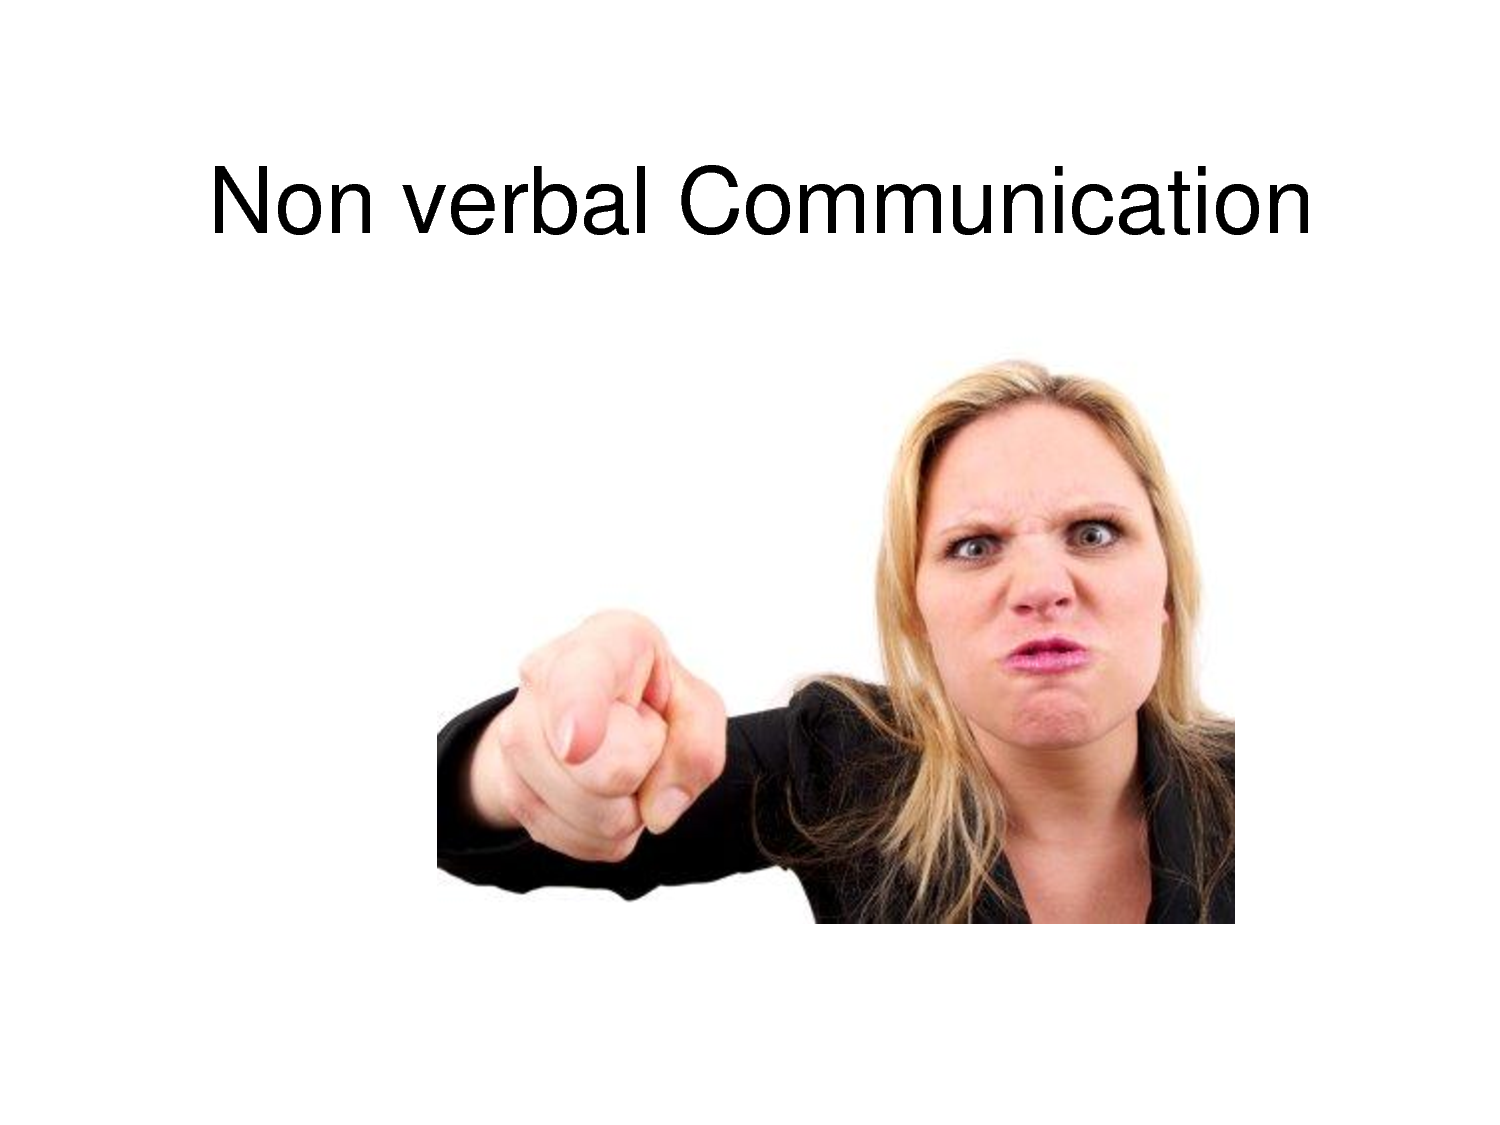 most communication is nonverbal nonverbal communication difference between verbal and nonverbal communication